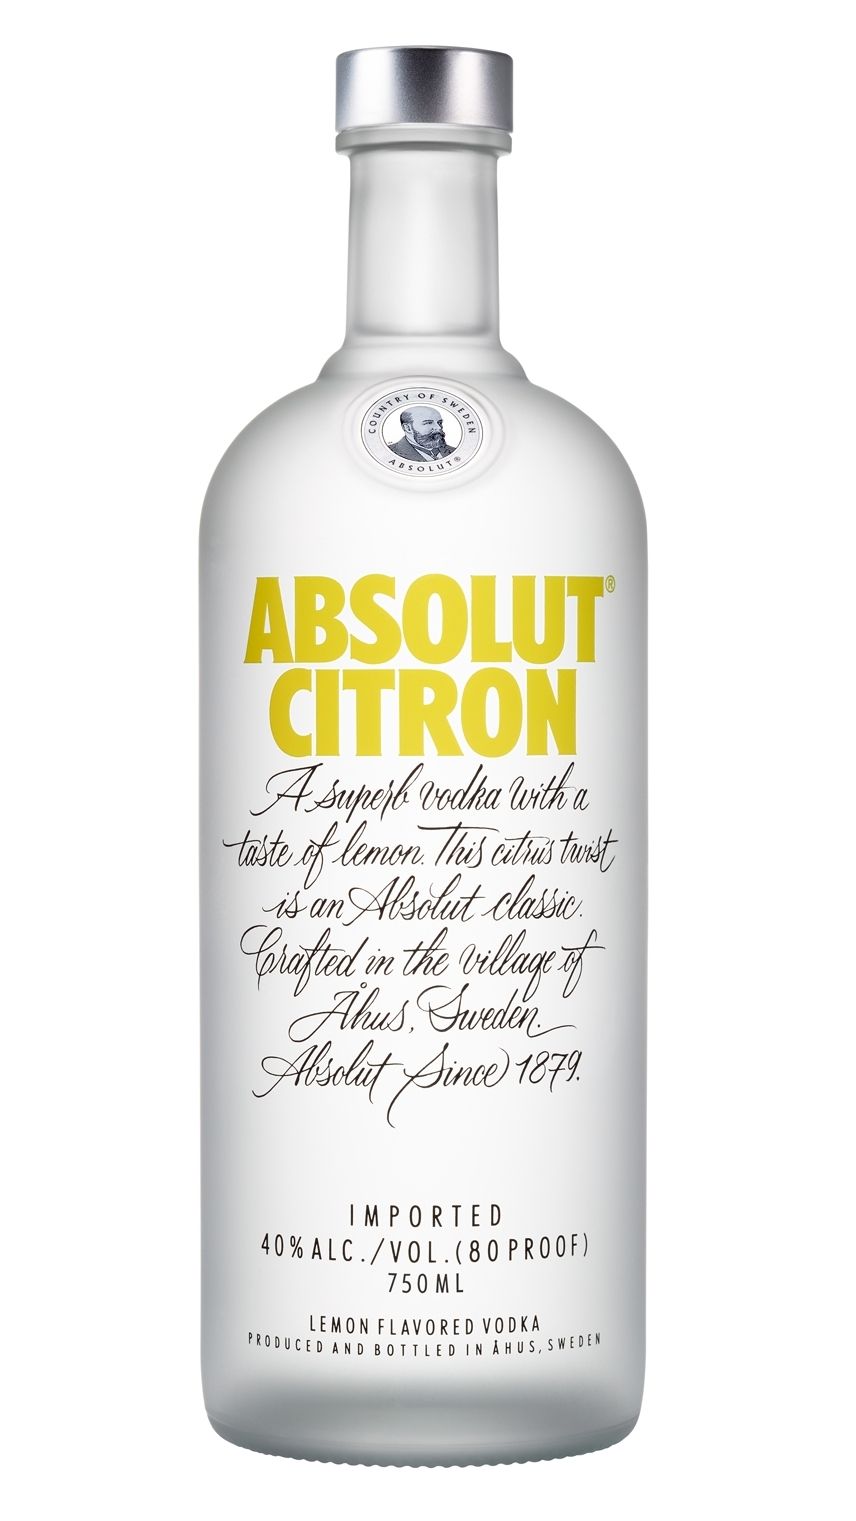 Absolut-citron-Straight.jpg